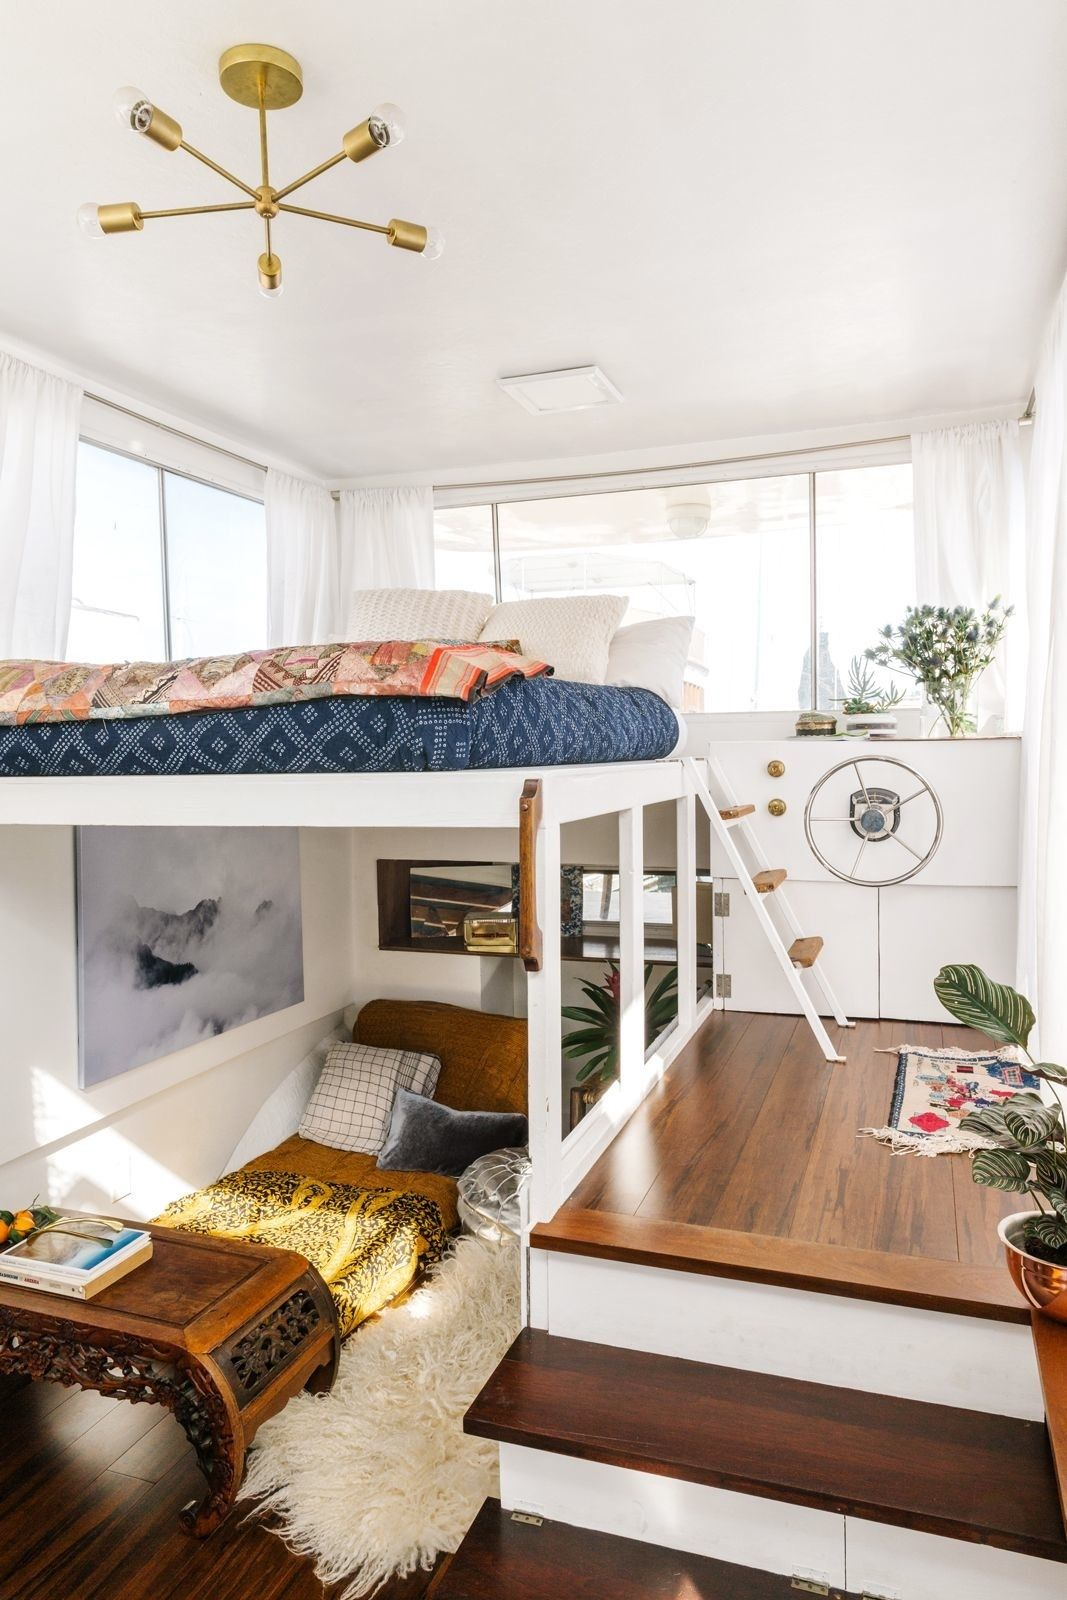 Here's an alternative to renting you may not have thought of: buying a houseboat. If you live somewhere like the Bay Area, or on a coast, a houseboat might be the most cost effective rental or own you have!